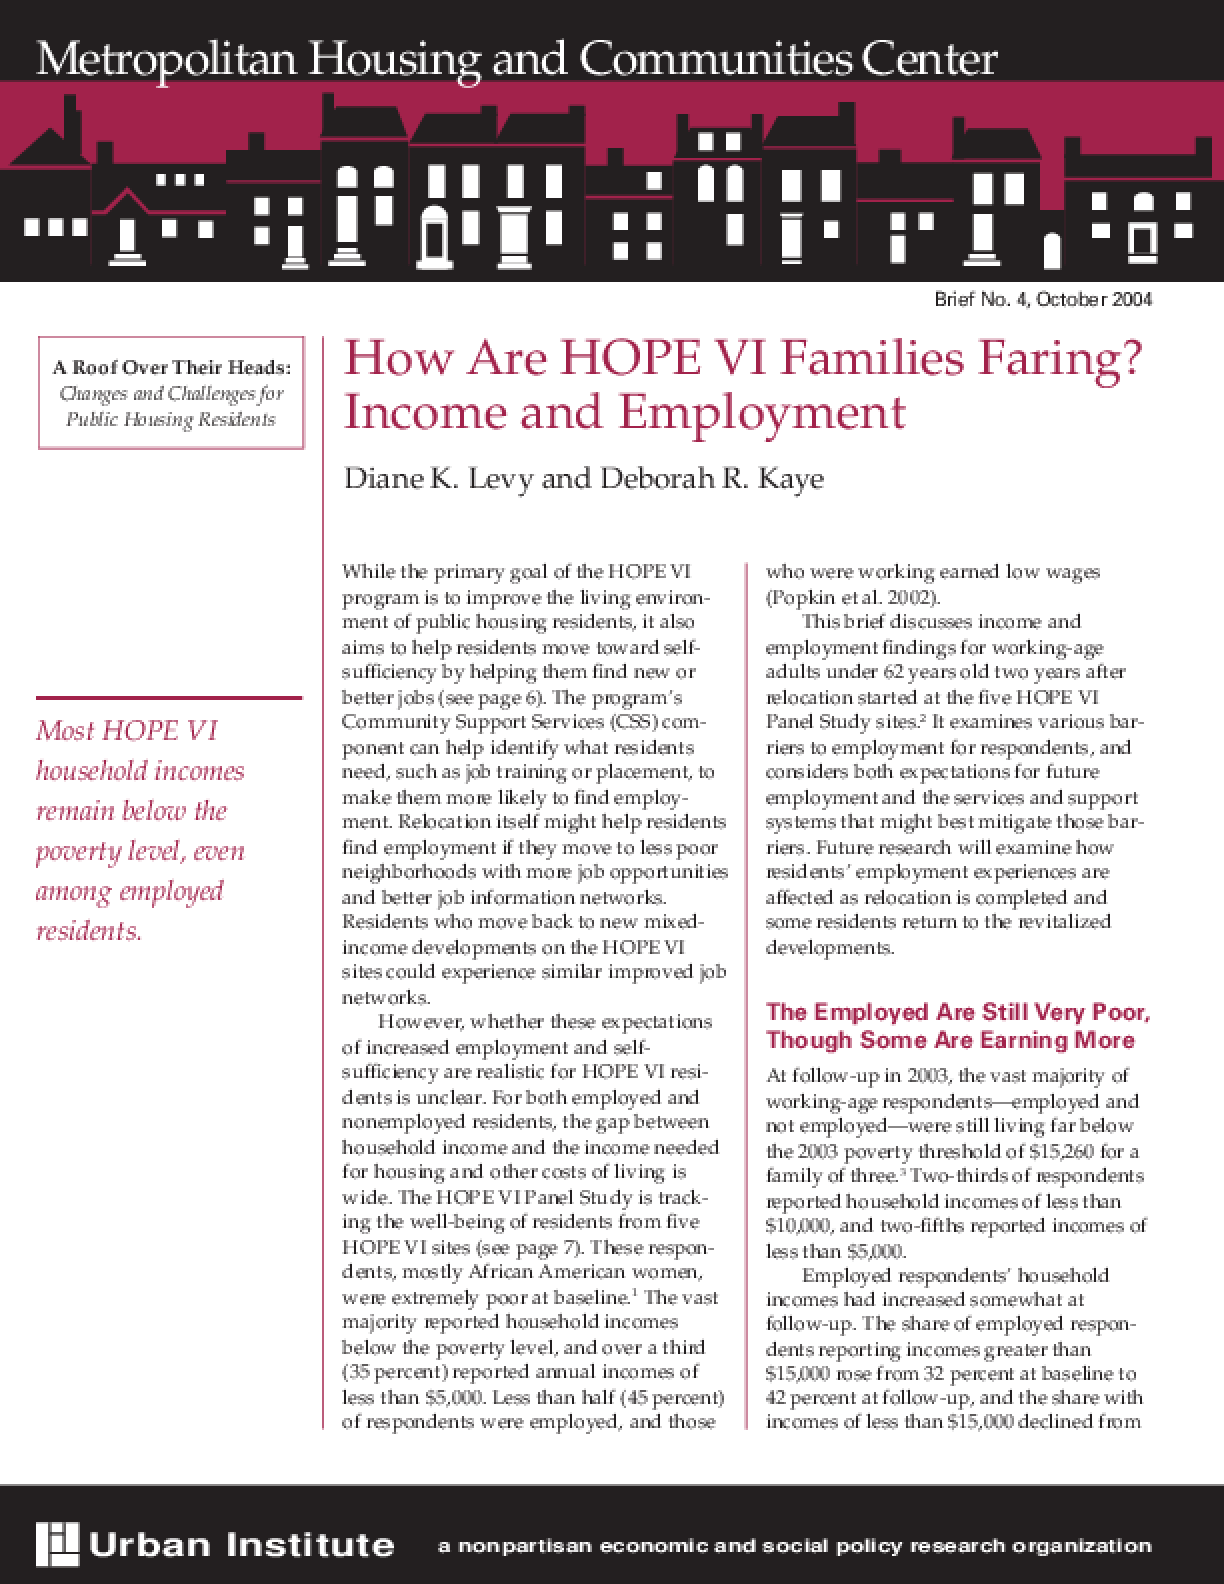 How Are HOPE VI Families Faring? Income and Employment